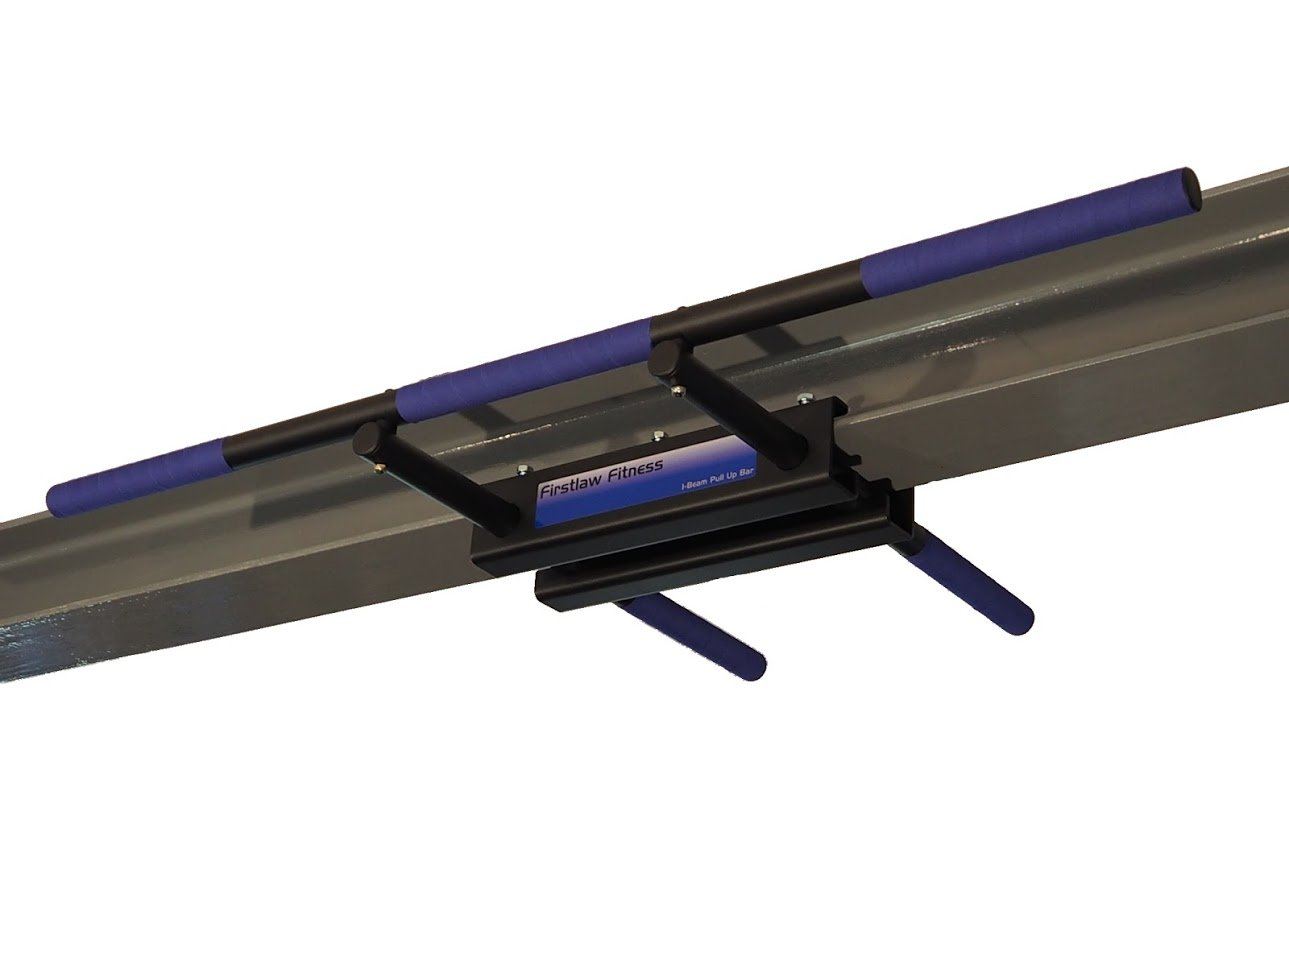 Firstlaw Fitness - 600 LBS Weight Limit - I-Beam Pull Up Bar - Straight Long Bar (Blue) Grip Tape - Made in The USA!